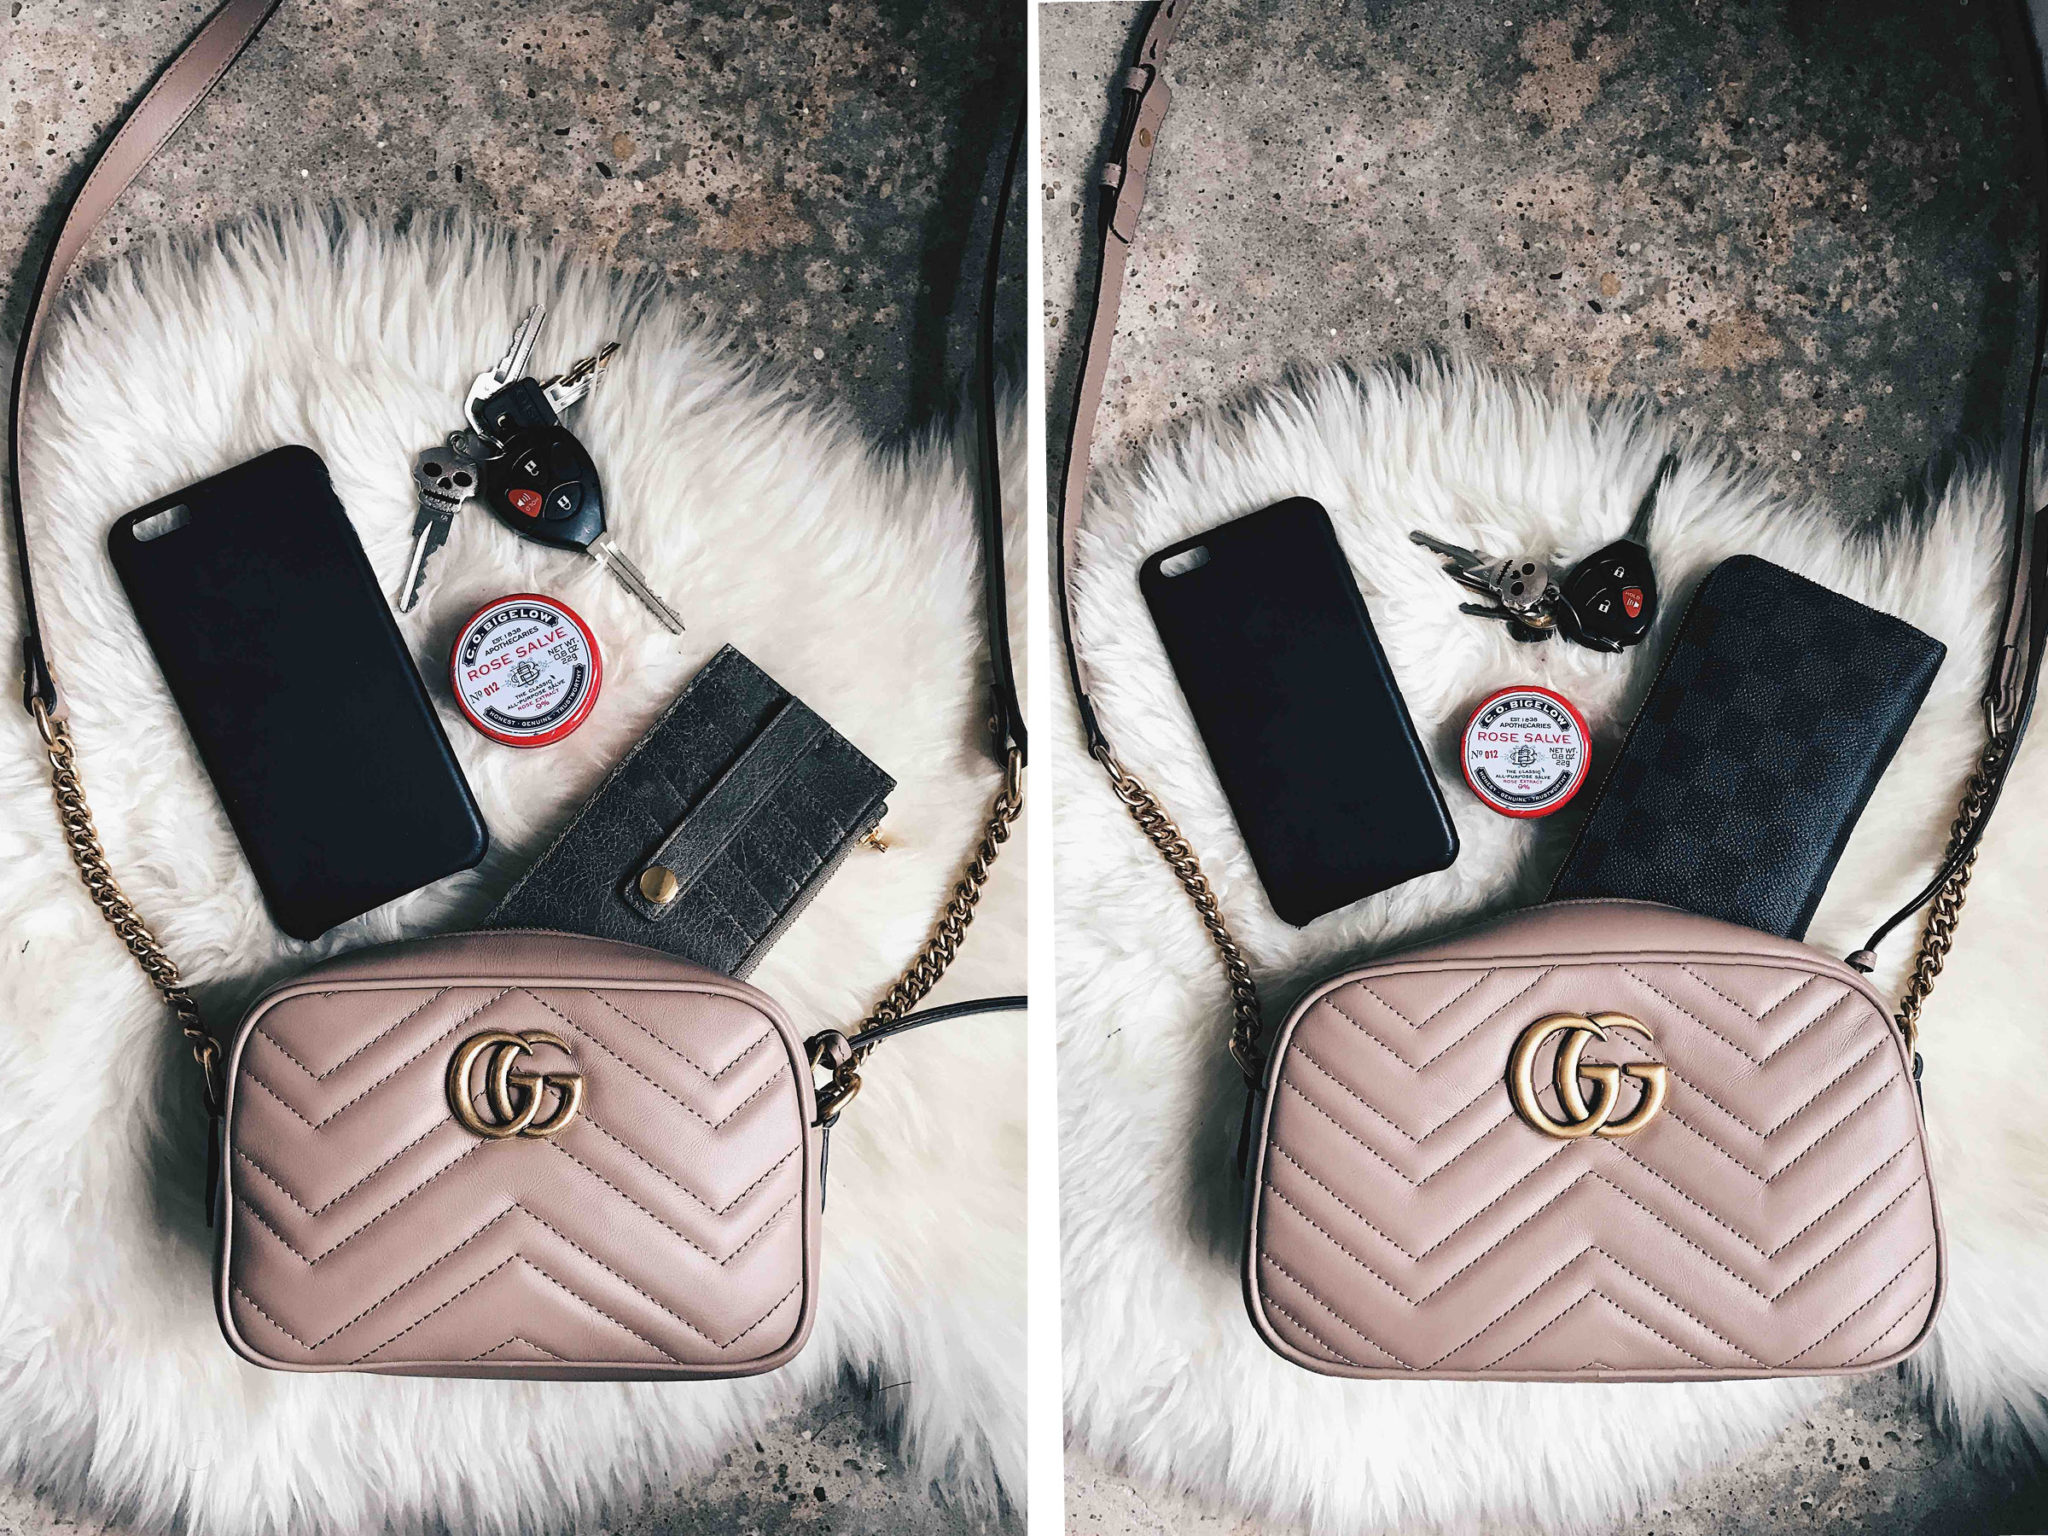 DTKAustin shares the size comparison for the Gucci Mini and Small Marmont Crossbody. If you're in the market for a new Gucci bag click here for more information! Gucci Marmont | Gucci Leather Bag | Gucci Crossbody | Gucci Marmont Mini | Gucci Marmont Small | Gucci Marmont Sizes